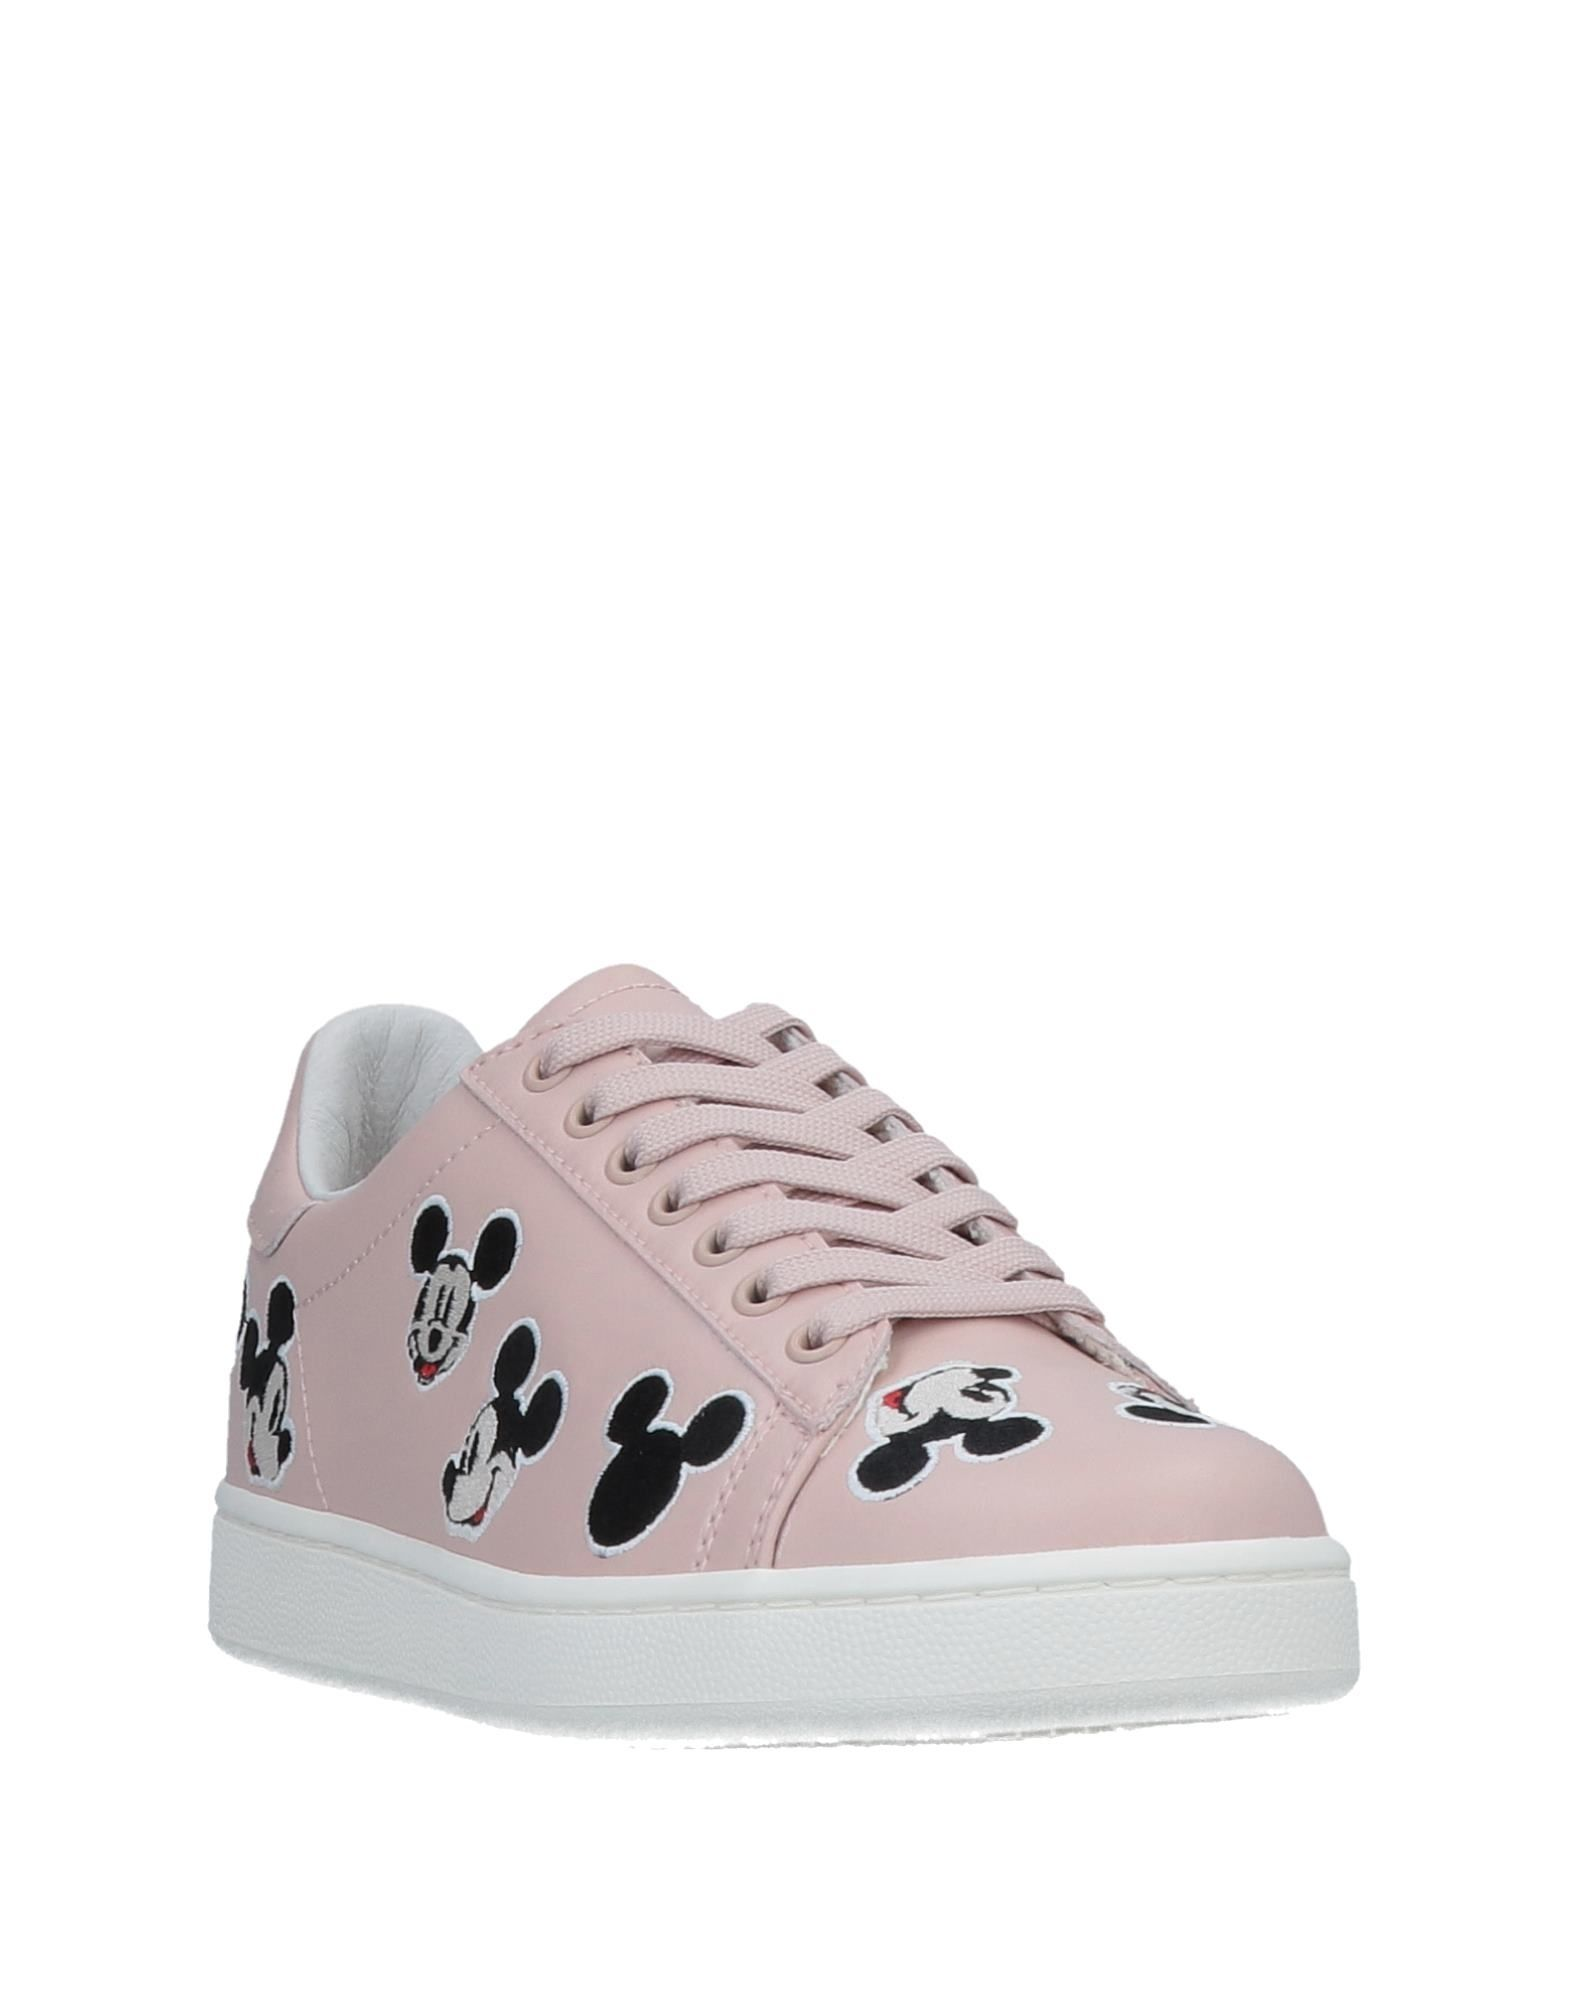 Sneakers Moa Master Master Master Of Arts Donna - 11509512GN acf3f6